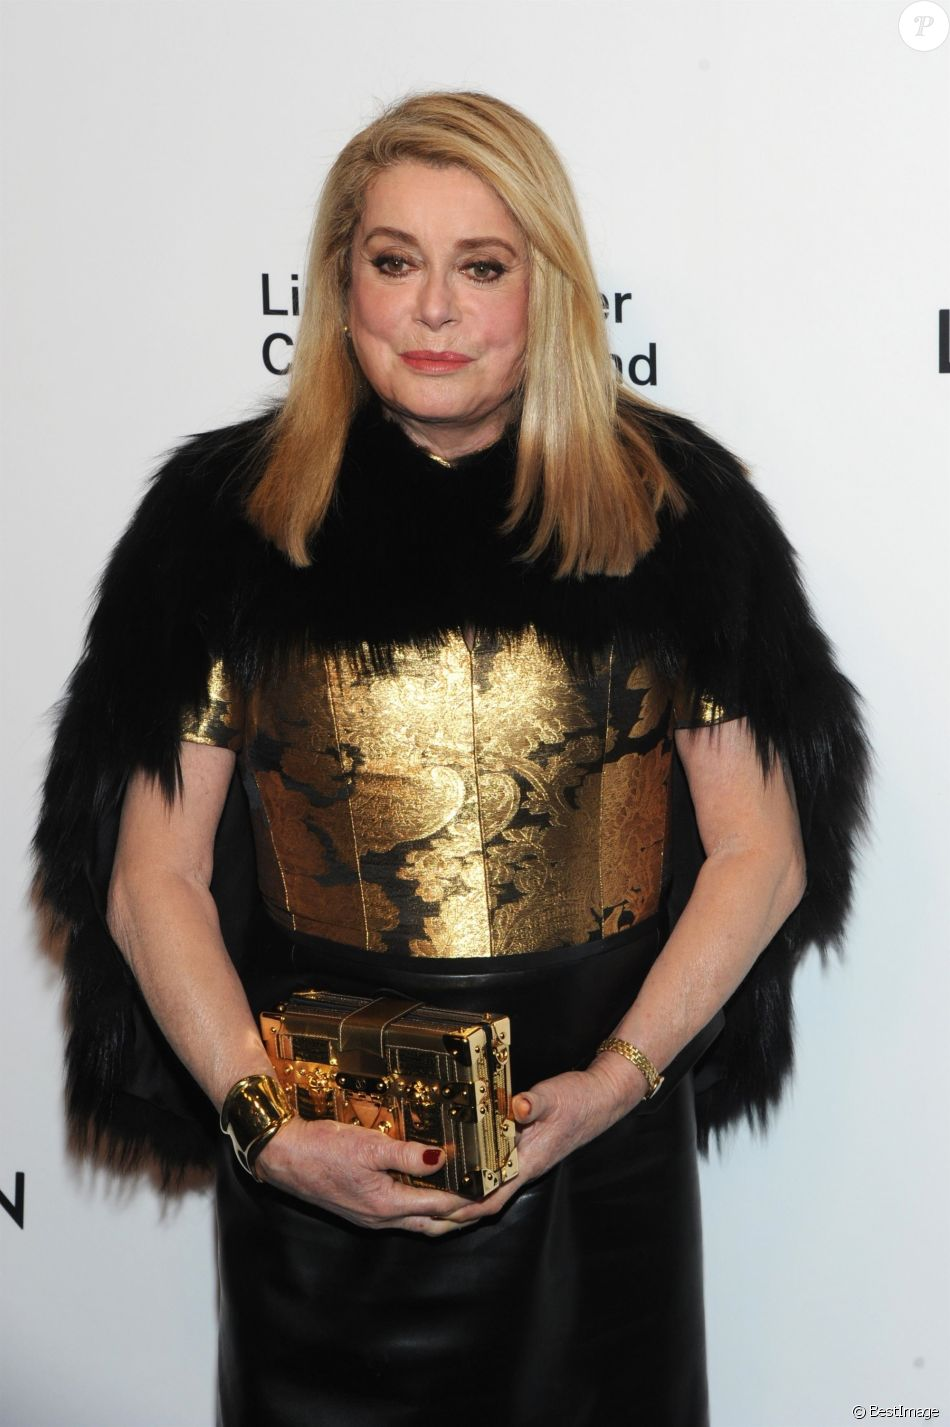 Catherine Deneuve à la soirée Louis Vuitton & Nicolas Ghesquire for Harpers Bazaar au Lincoln Center's Alice Tully Hall à New York, le 30 novembre 2017